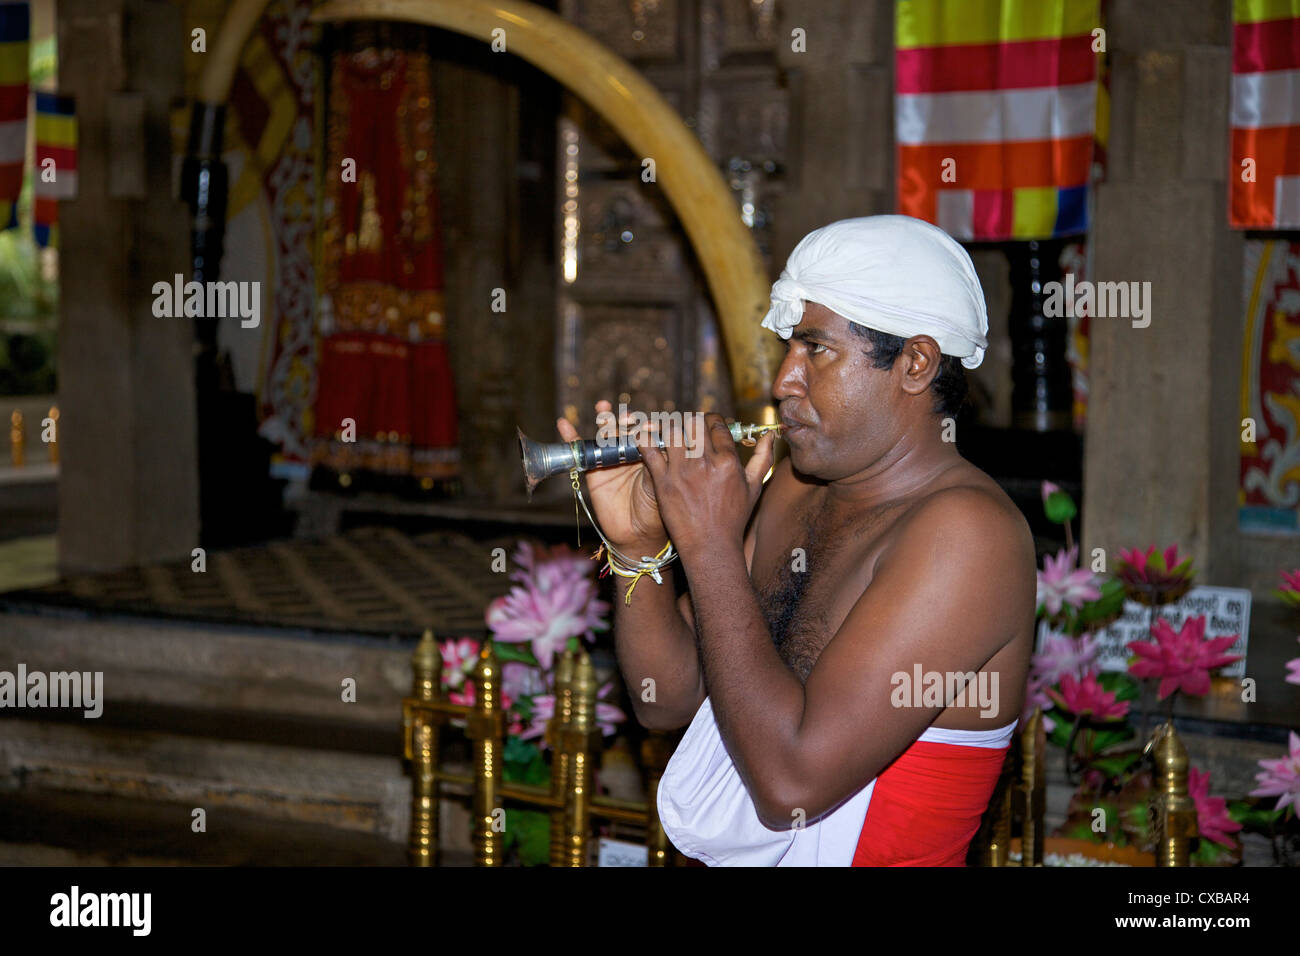 Man playing Horanewa, Tooth Sanctuary, Temple of the Tooth Relic, Kandy, Sri Lanka, Asia - Stock Image